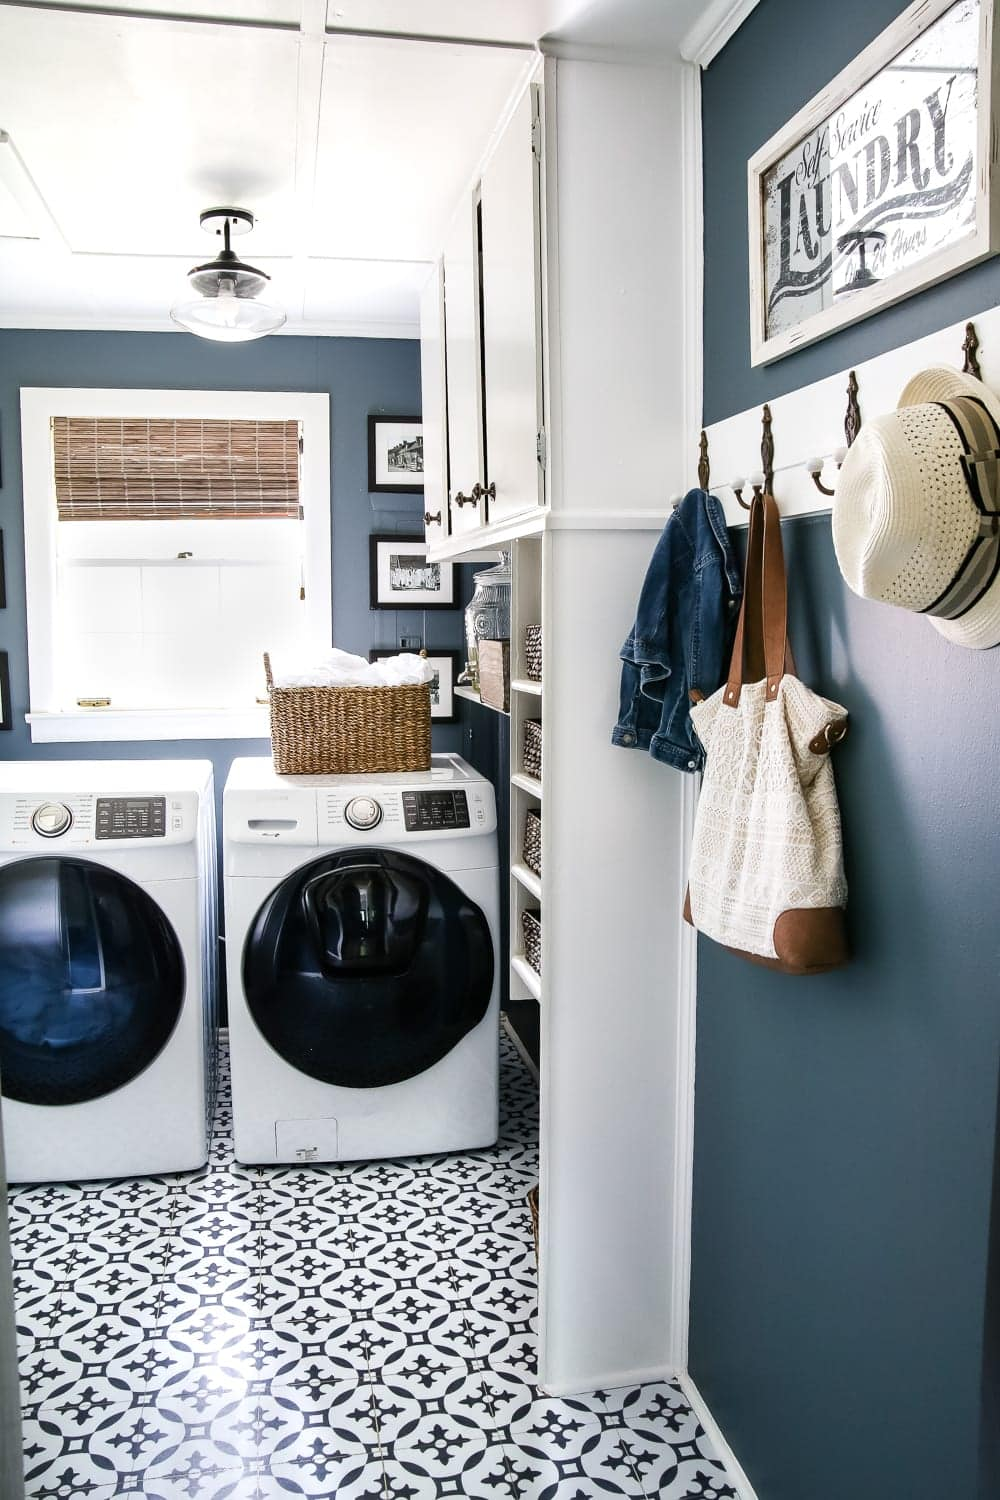 High Contrast Laundry Room Makeover Blesserhouse A Dingy And Dated